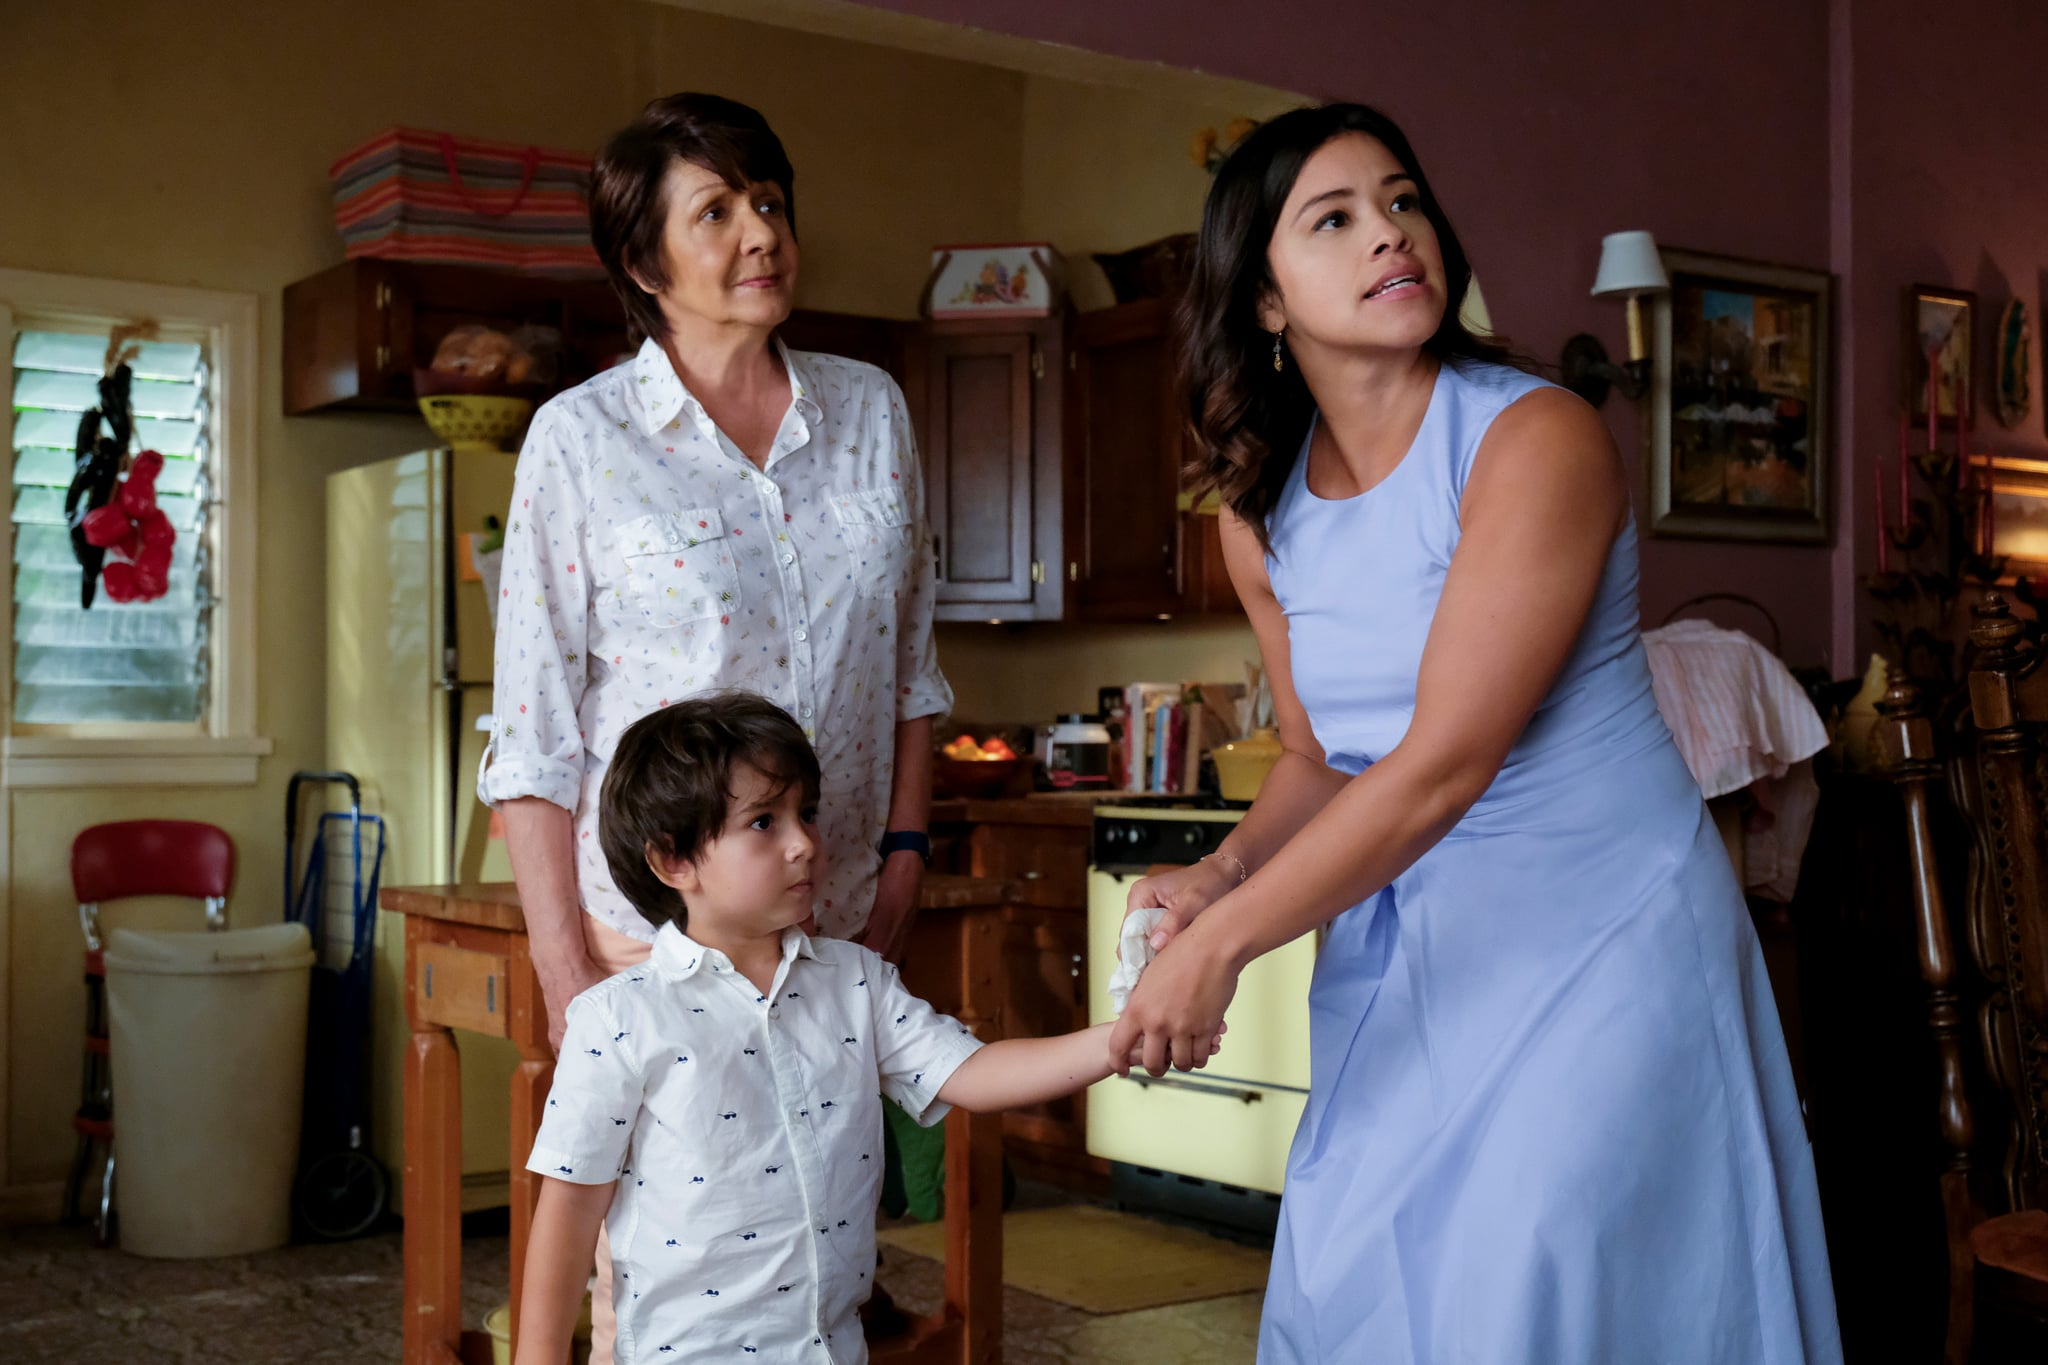 JANE THE VIRGIN, l-r: Ivonne Coll, Elias Janssen, Gina Rodriguez in 'Chapter Sixty-Six' (Season 4, Episode 2, aired October 20, 2017). ph: Scott Everett White/ The CW Network/courtesy Everett Collection